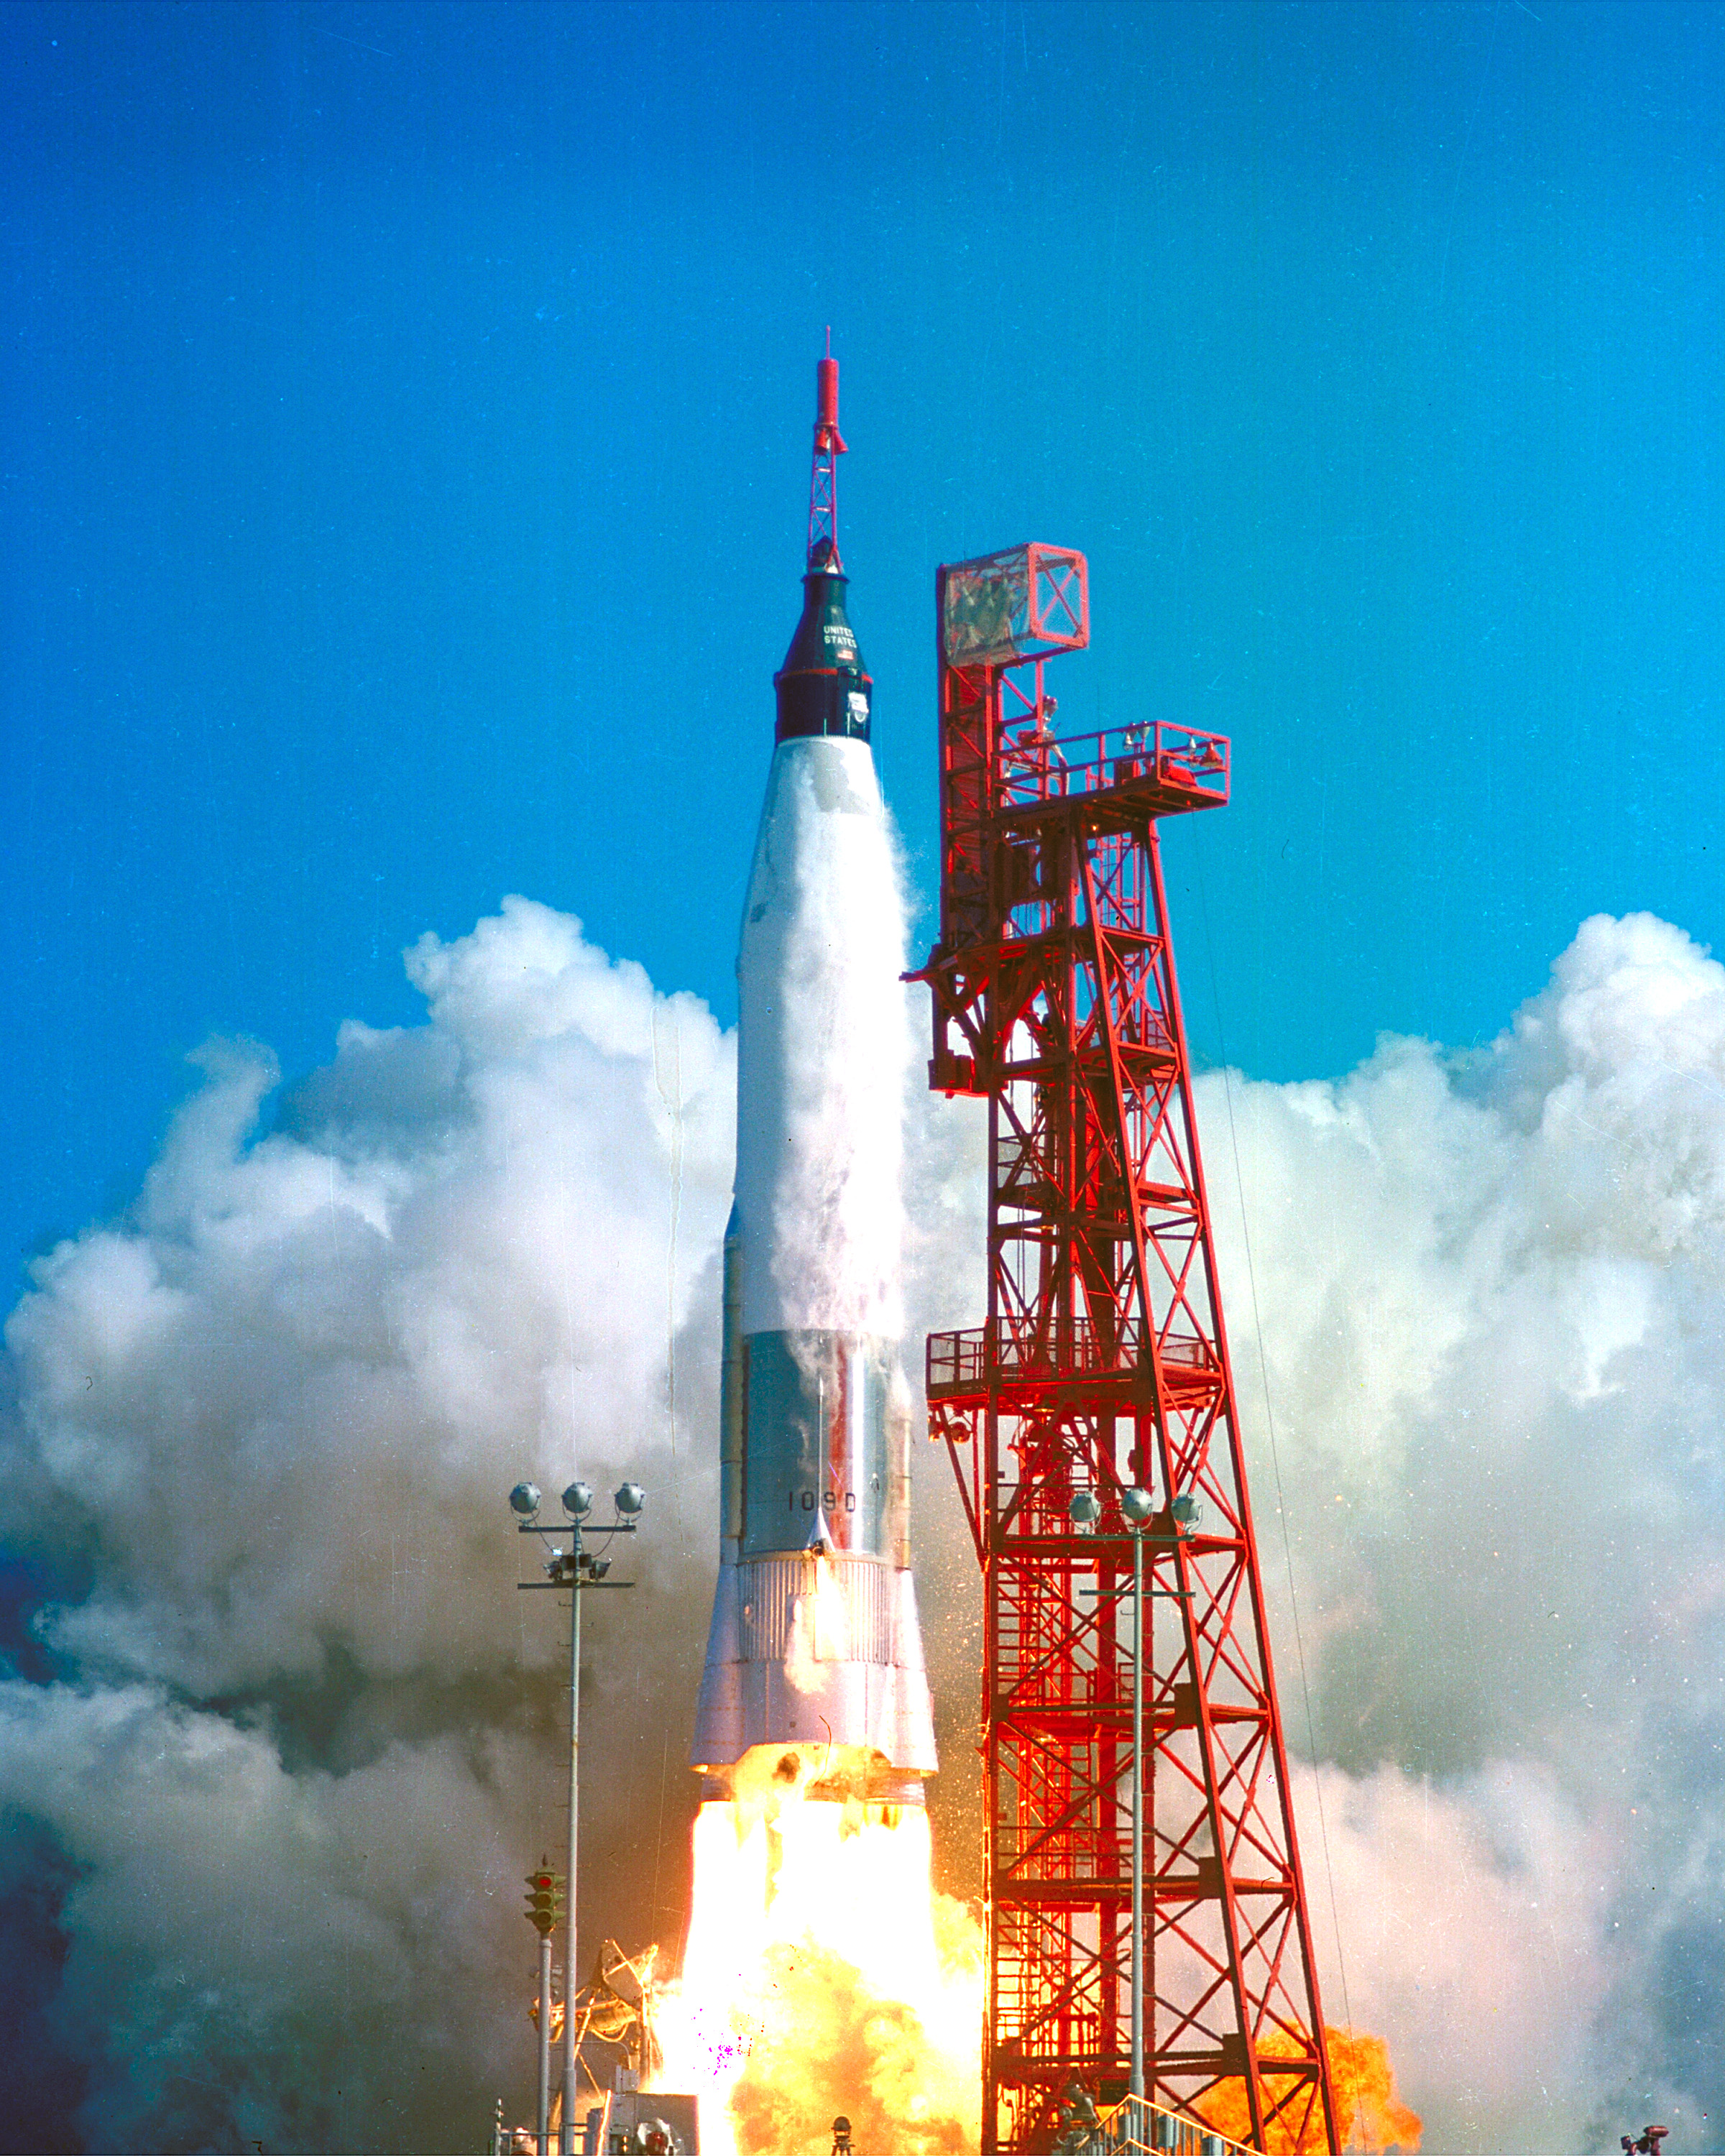 Launch of Friendship 7, the first American manned orbital space flight. Astronaut John Glenn aboard, the Mercury-Atlas rocket is launched from Pad 14, February 20, 1962.